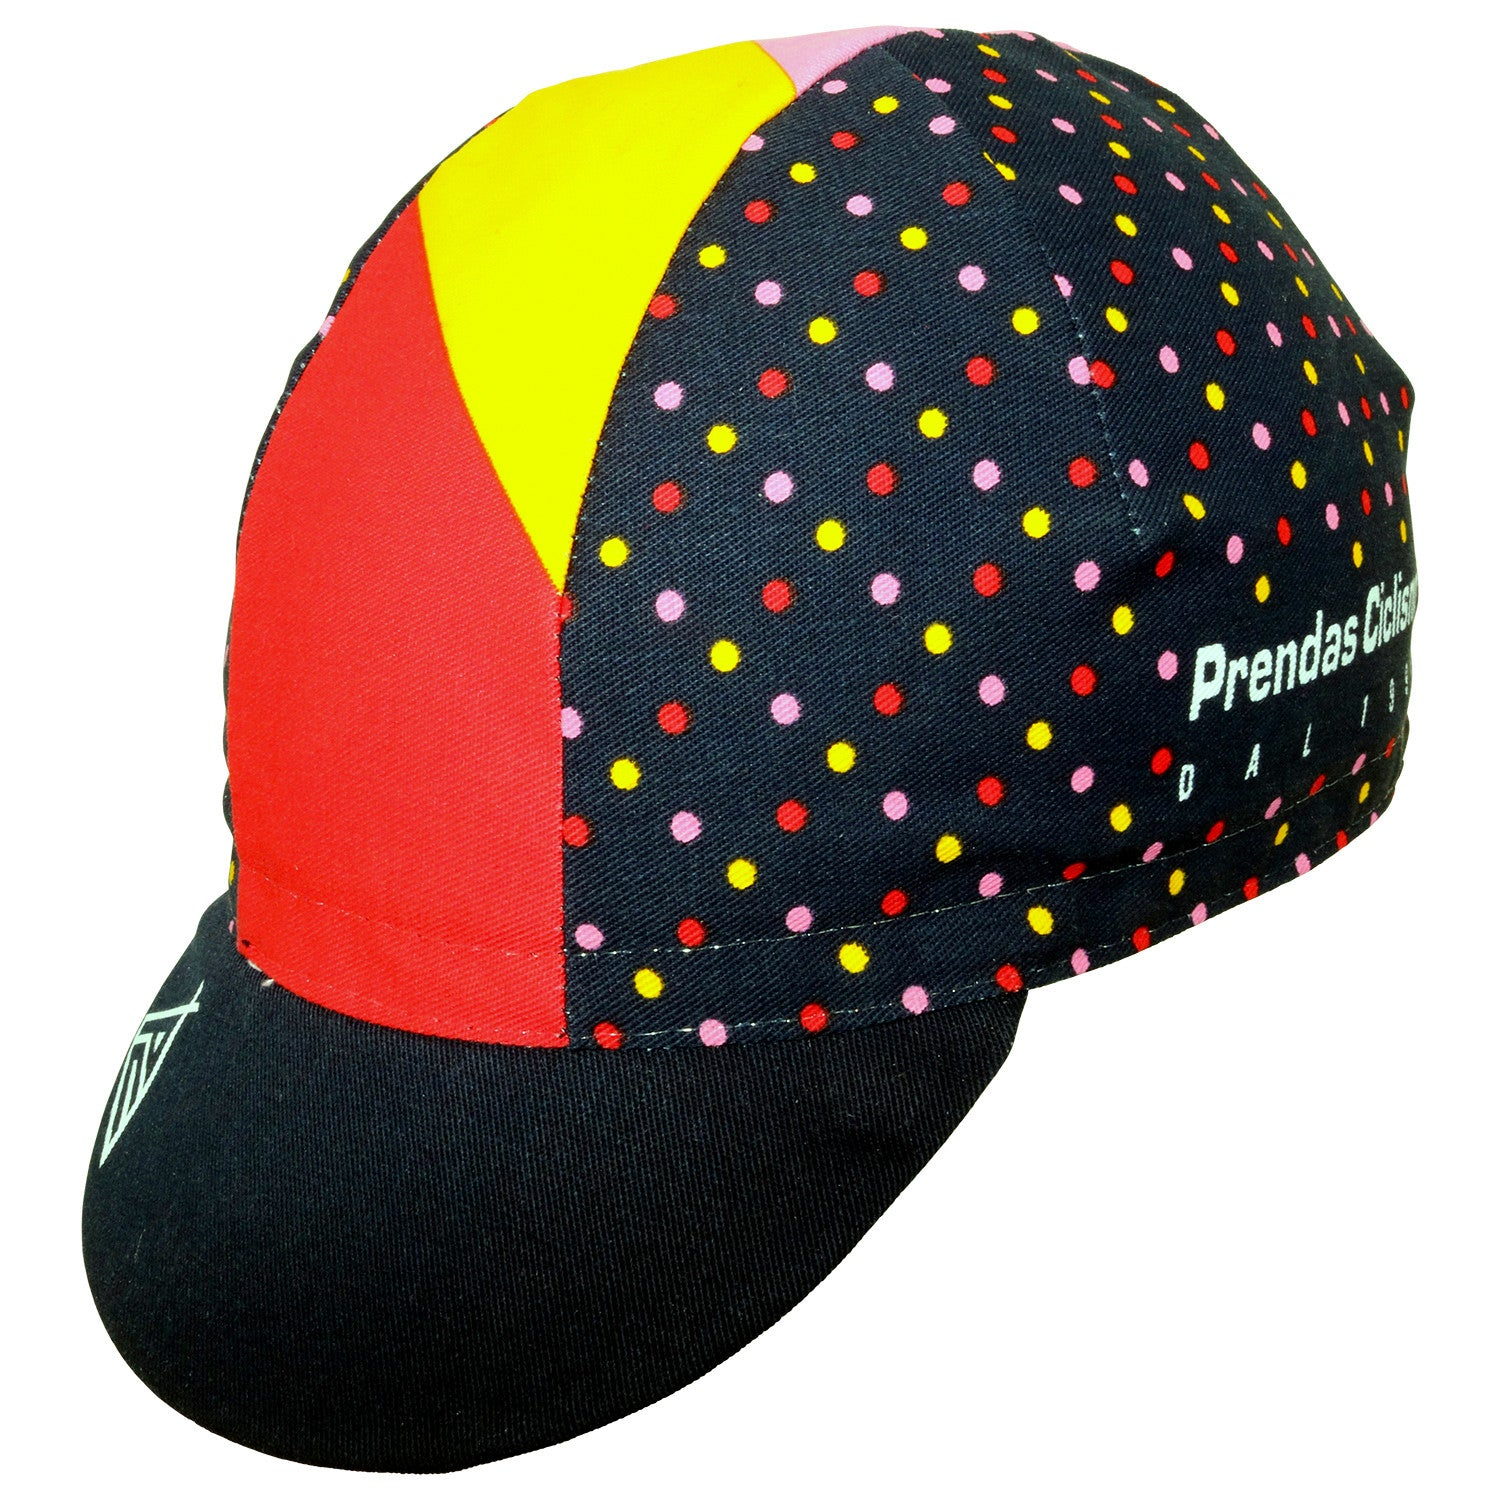 Prendas Grand Tour Celebration Cotton Cycling Cap